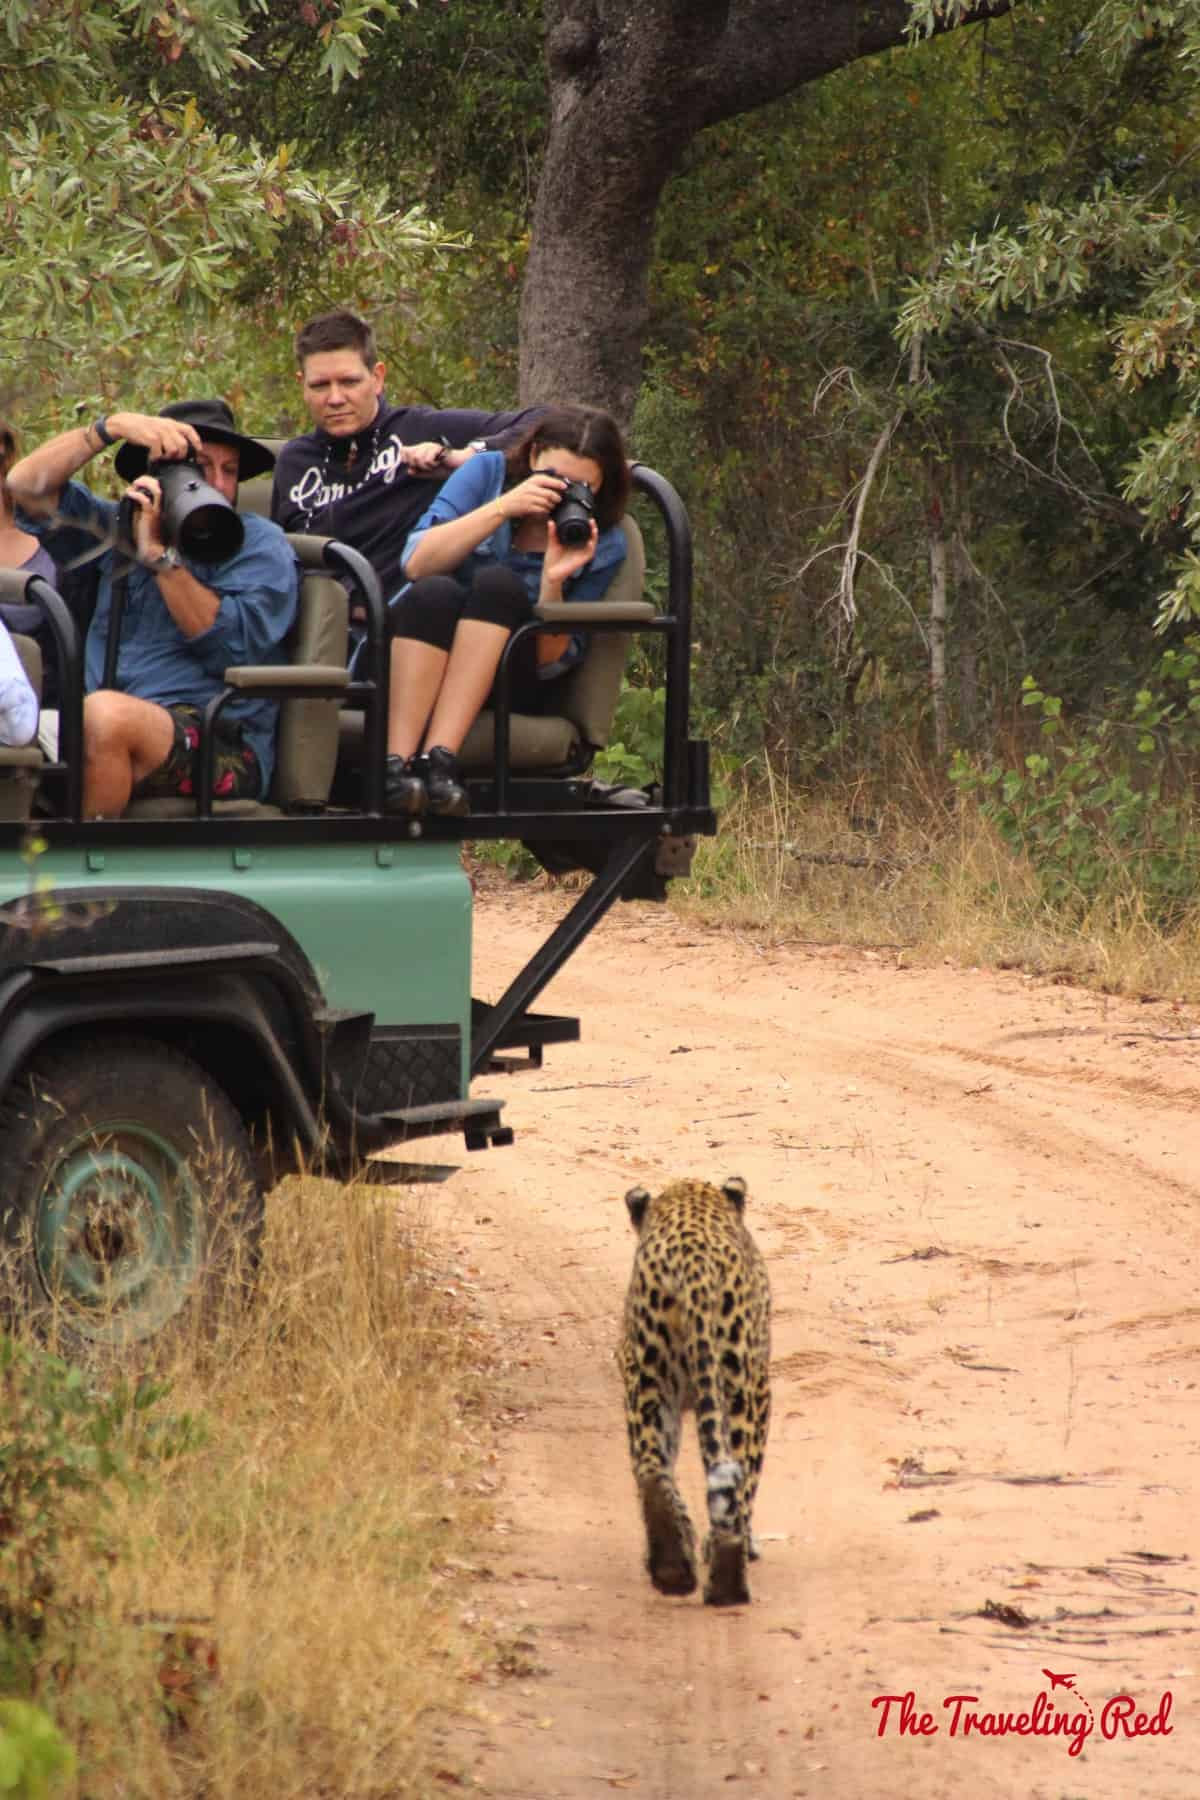 Leopard sighting while on safari in South Africa